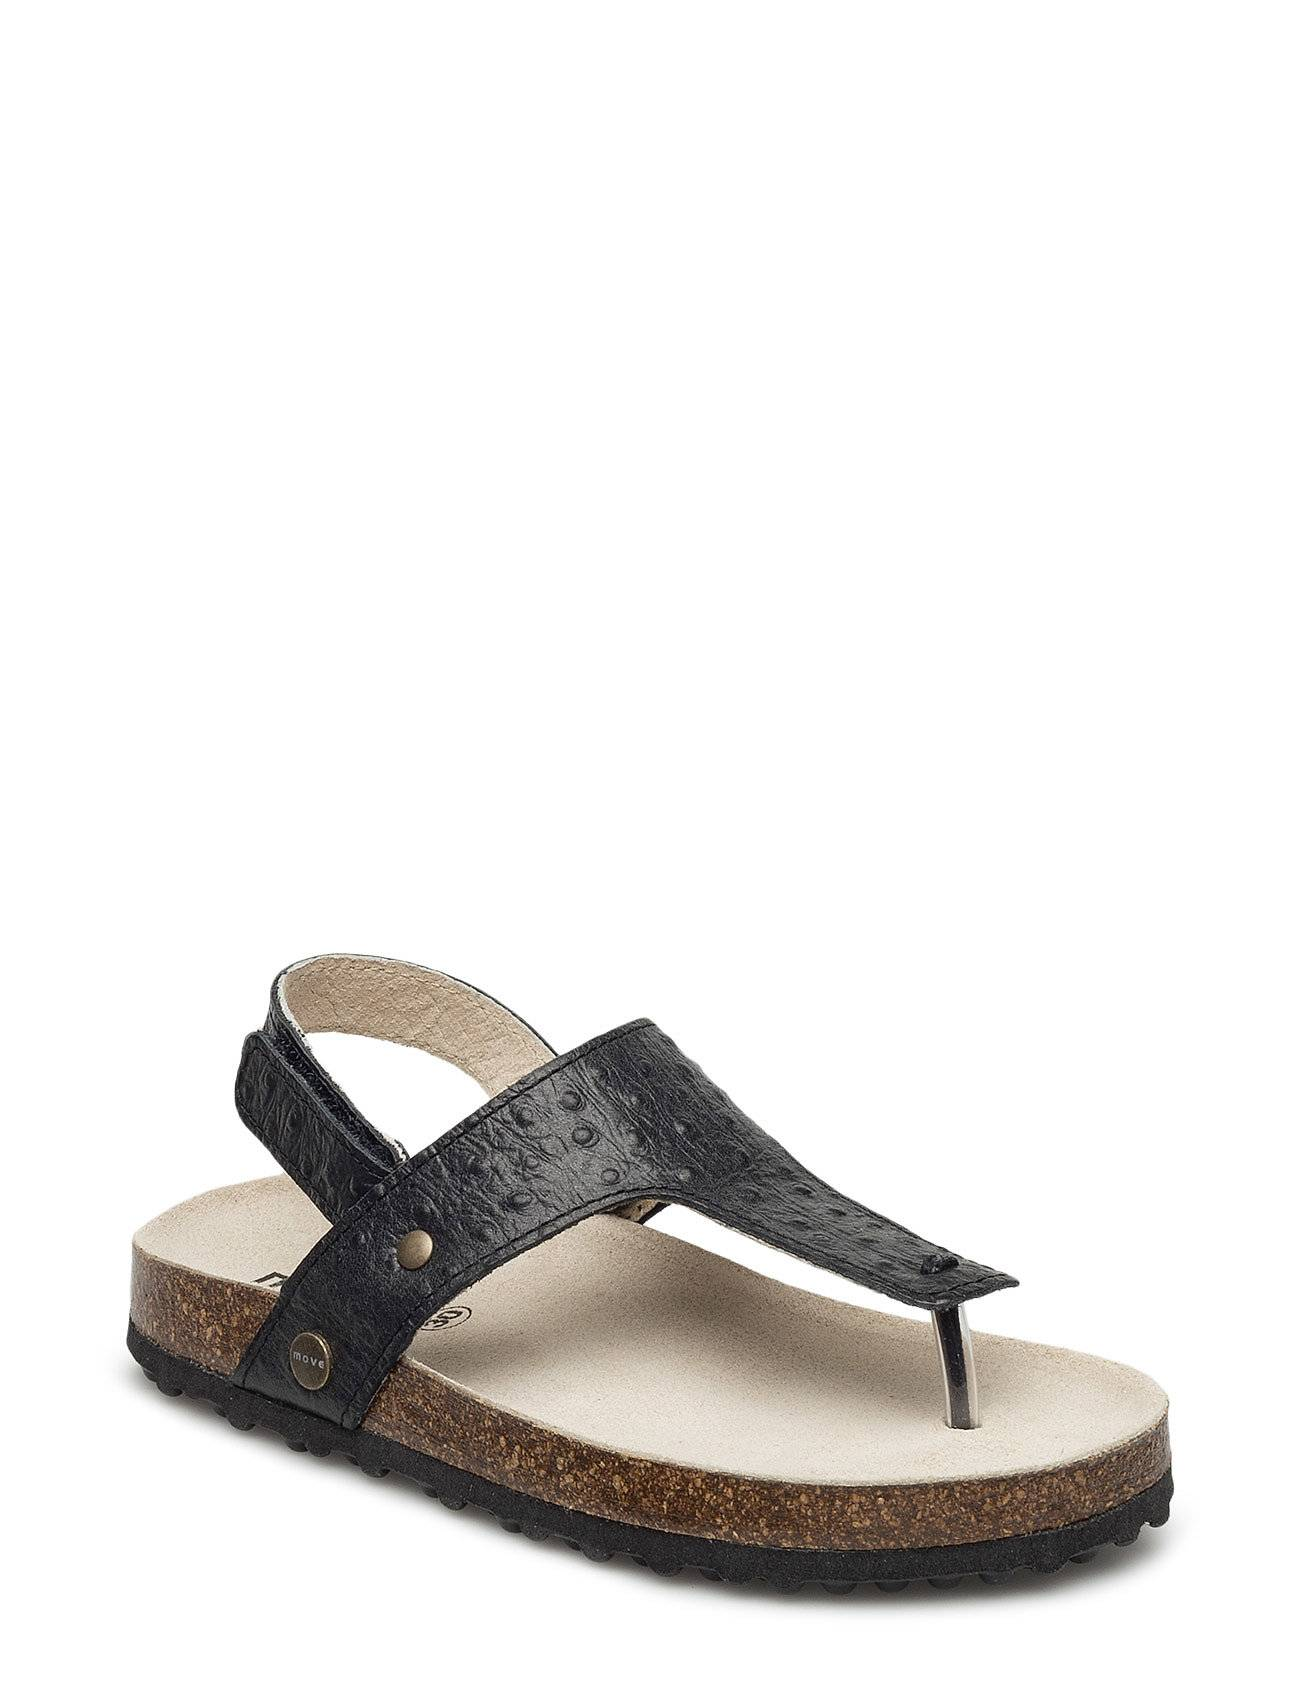 Move by Melton Girl Cork Backstrap Sandal